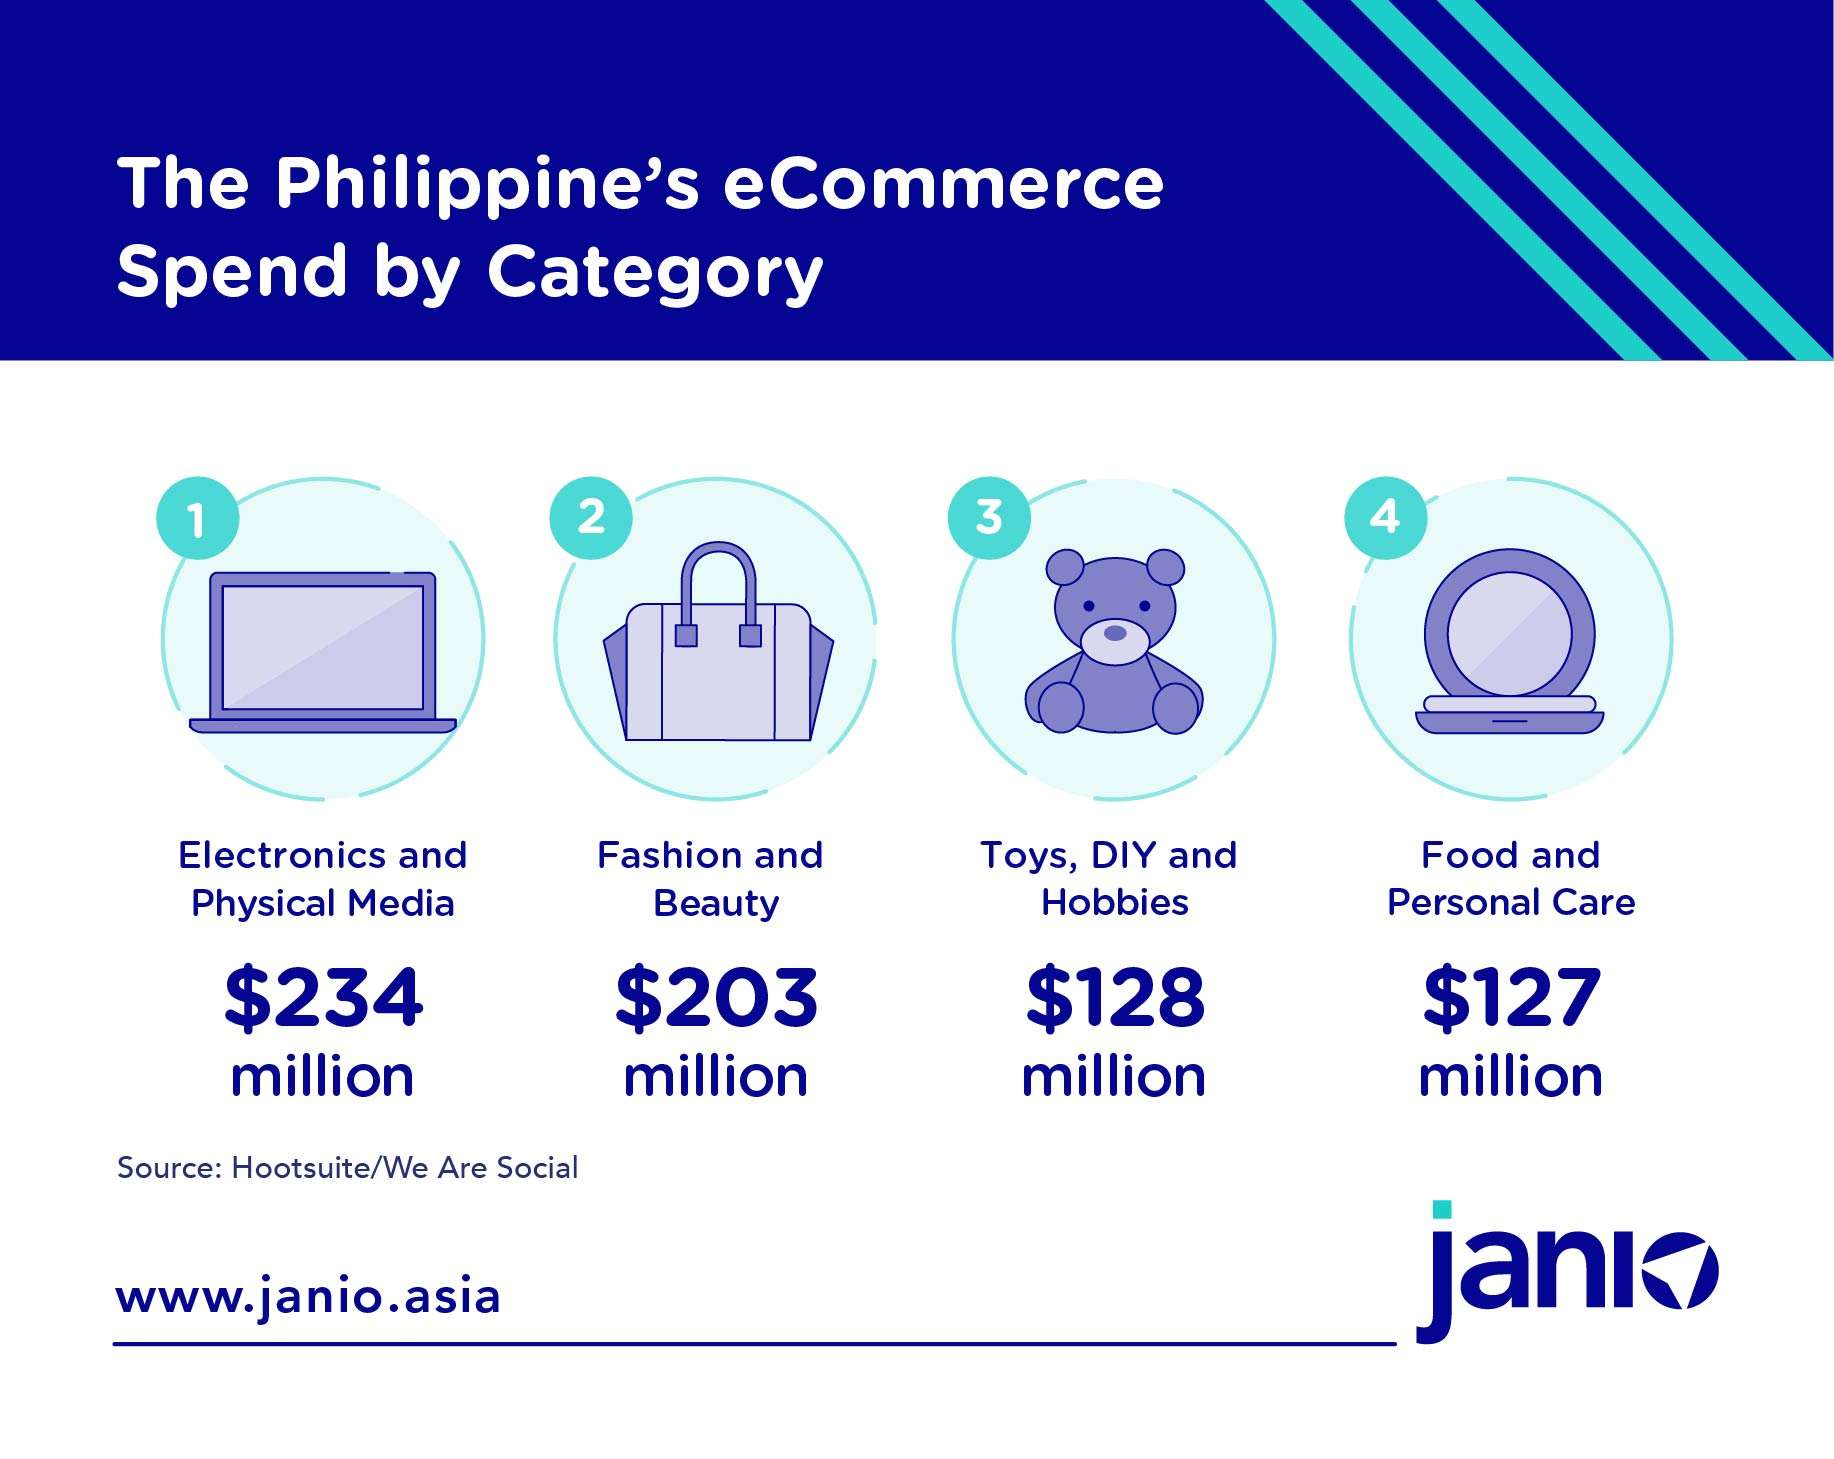 The Philippines' Top 3 eCommerce Product Categories